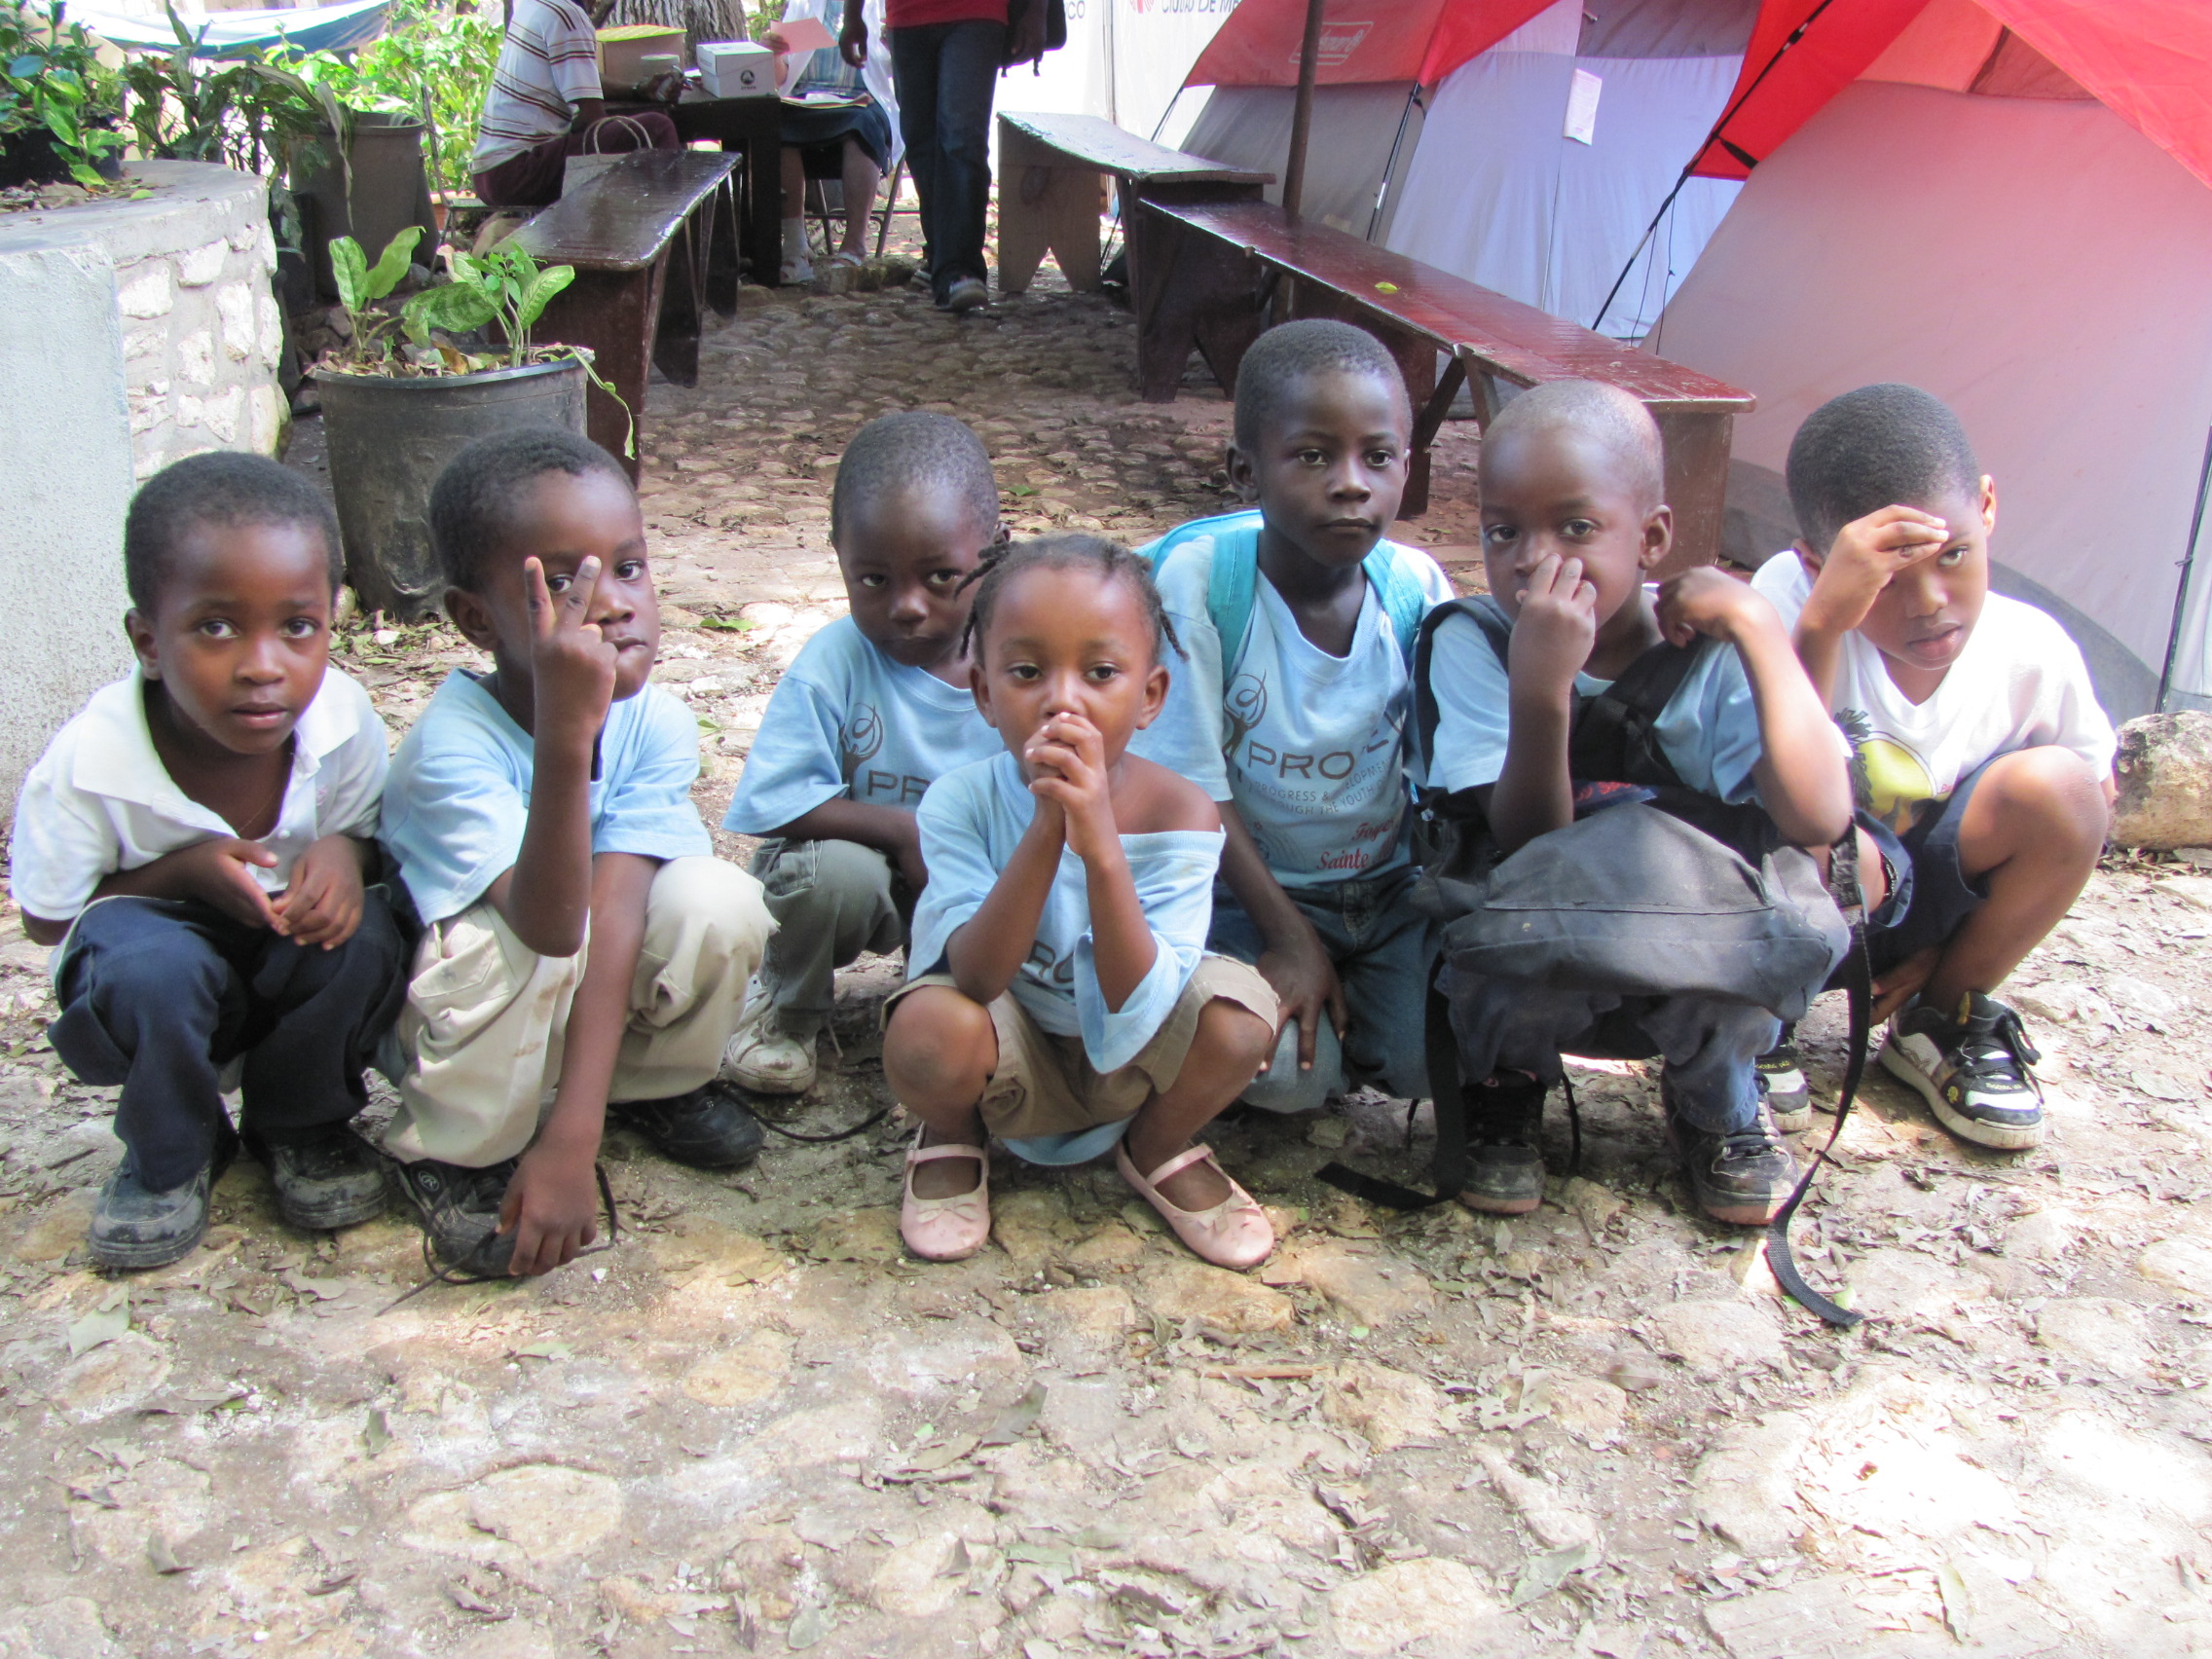 Children at our clinic in Haiti